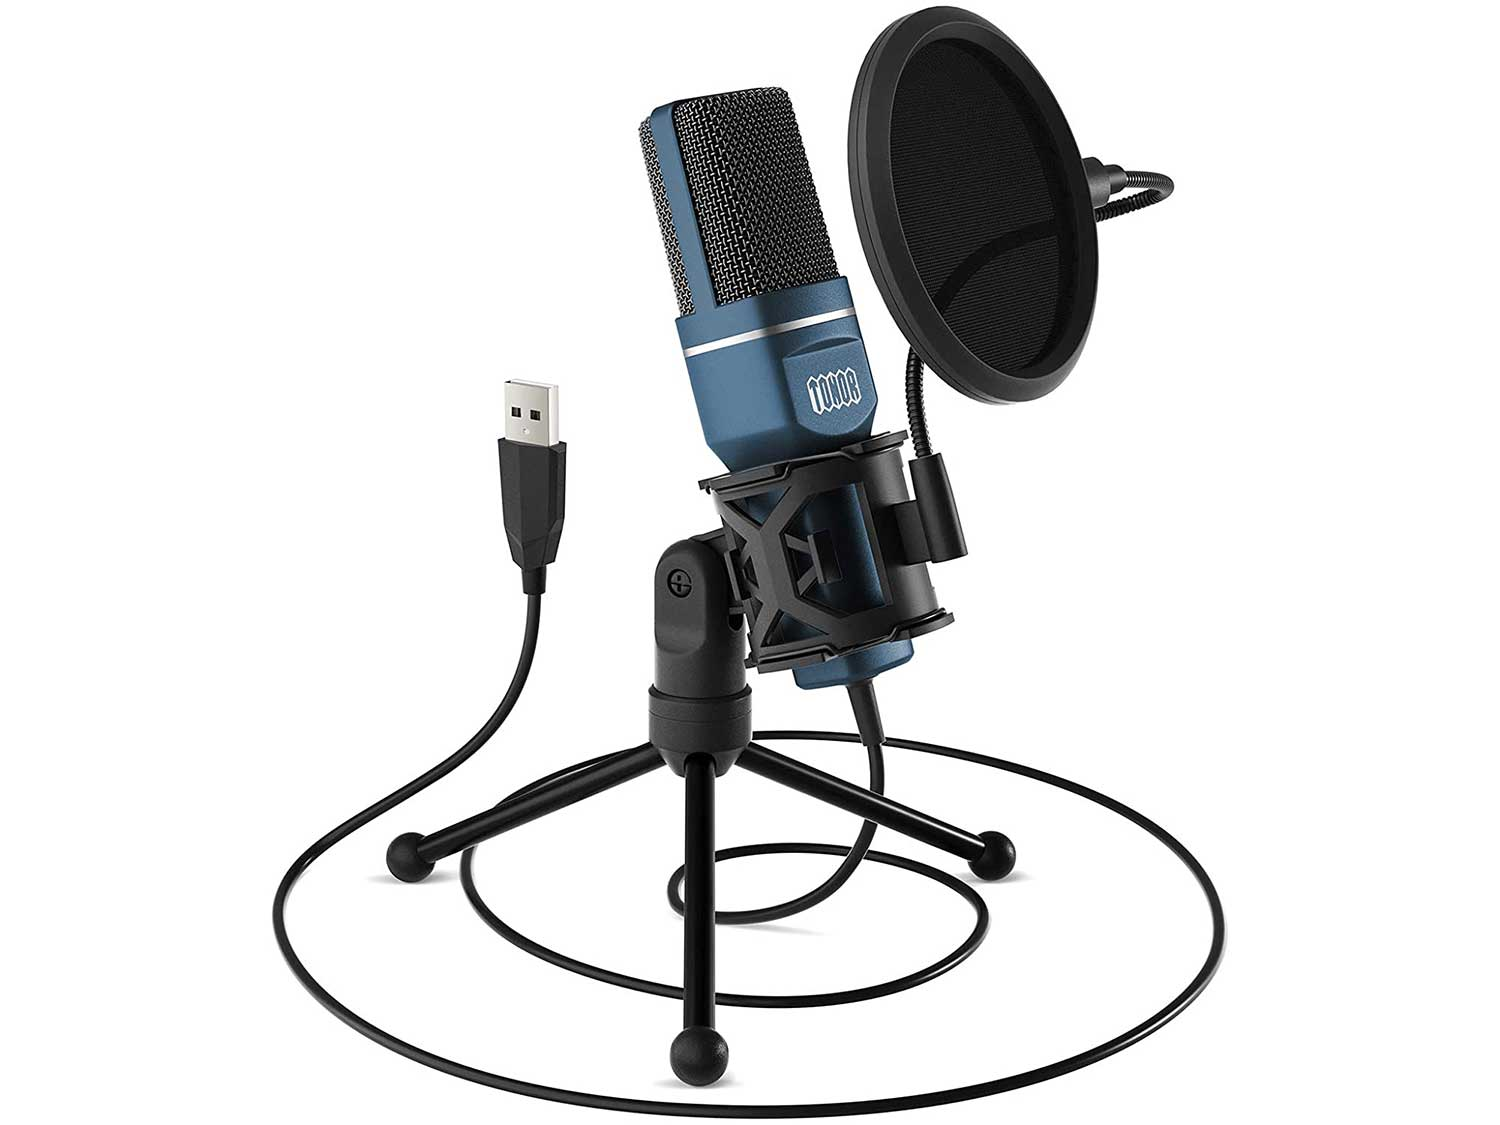 USB Gaming Microphone, TONOR Computer Condenser PC Mic with Tripod Stand & Pop Filter for Streaming, Podcasting, Vocal Recording, Compatible with iMac PC Laptop Desktop Windows Computer